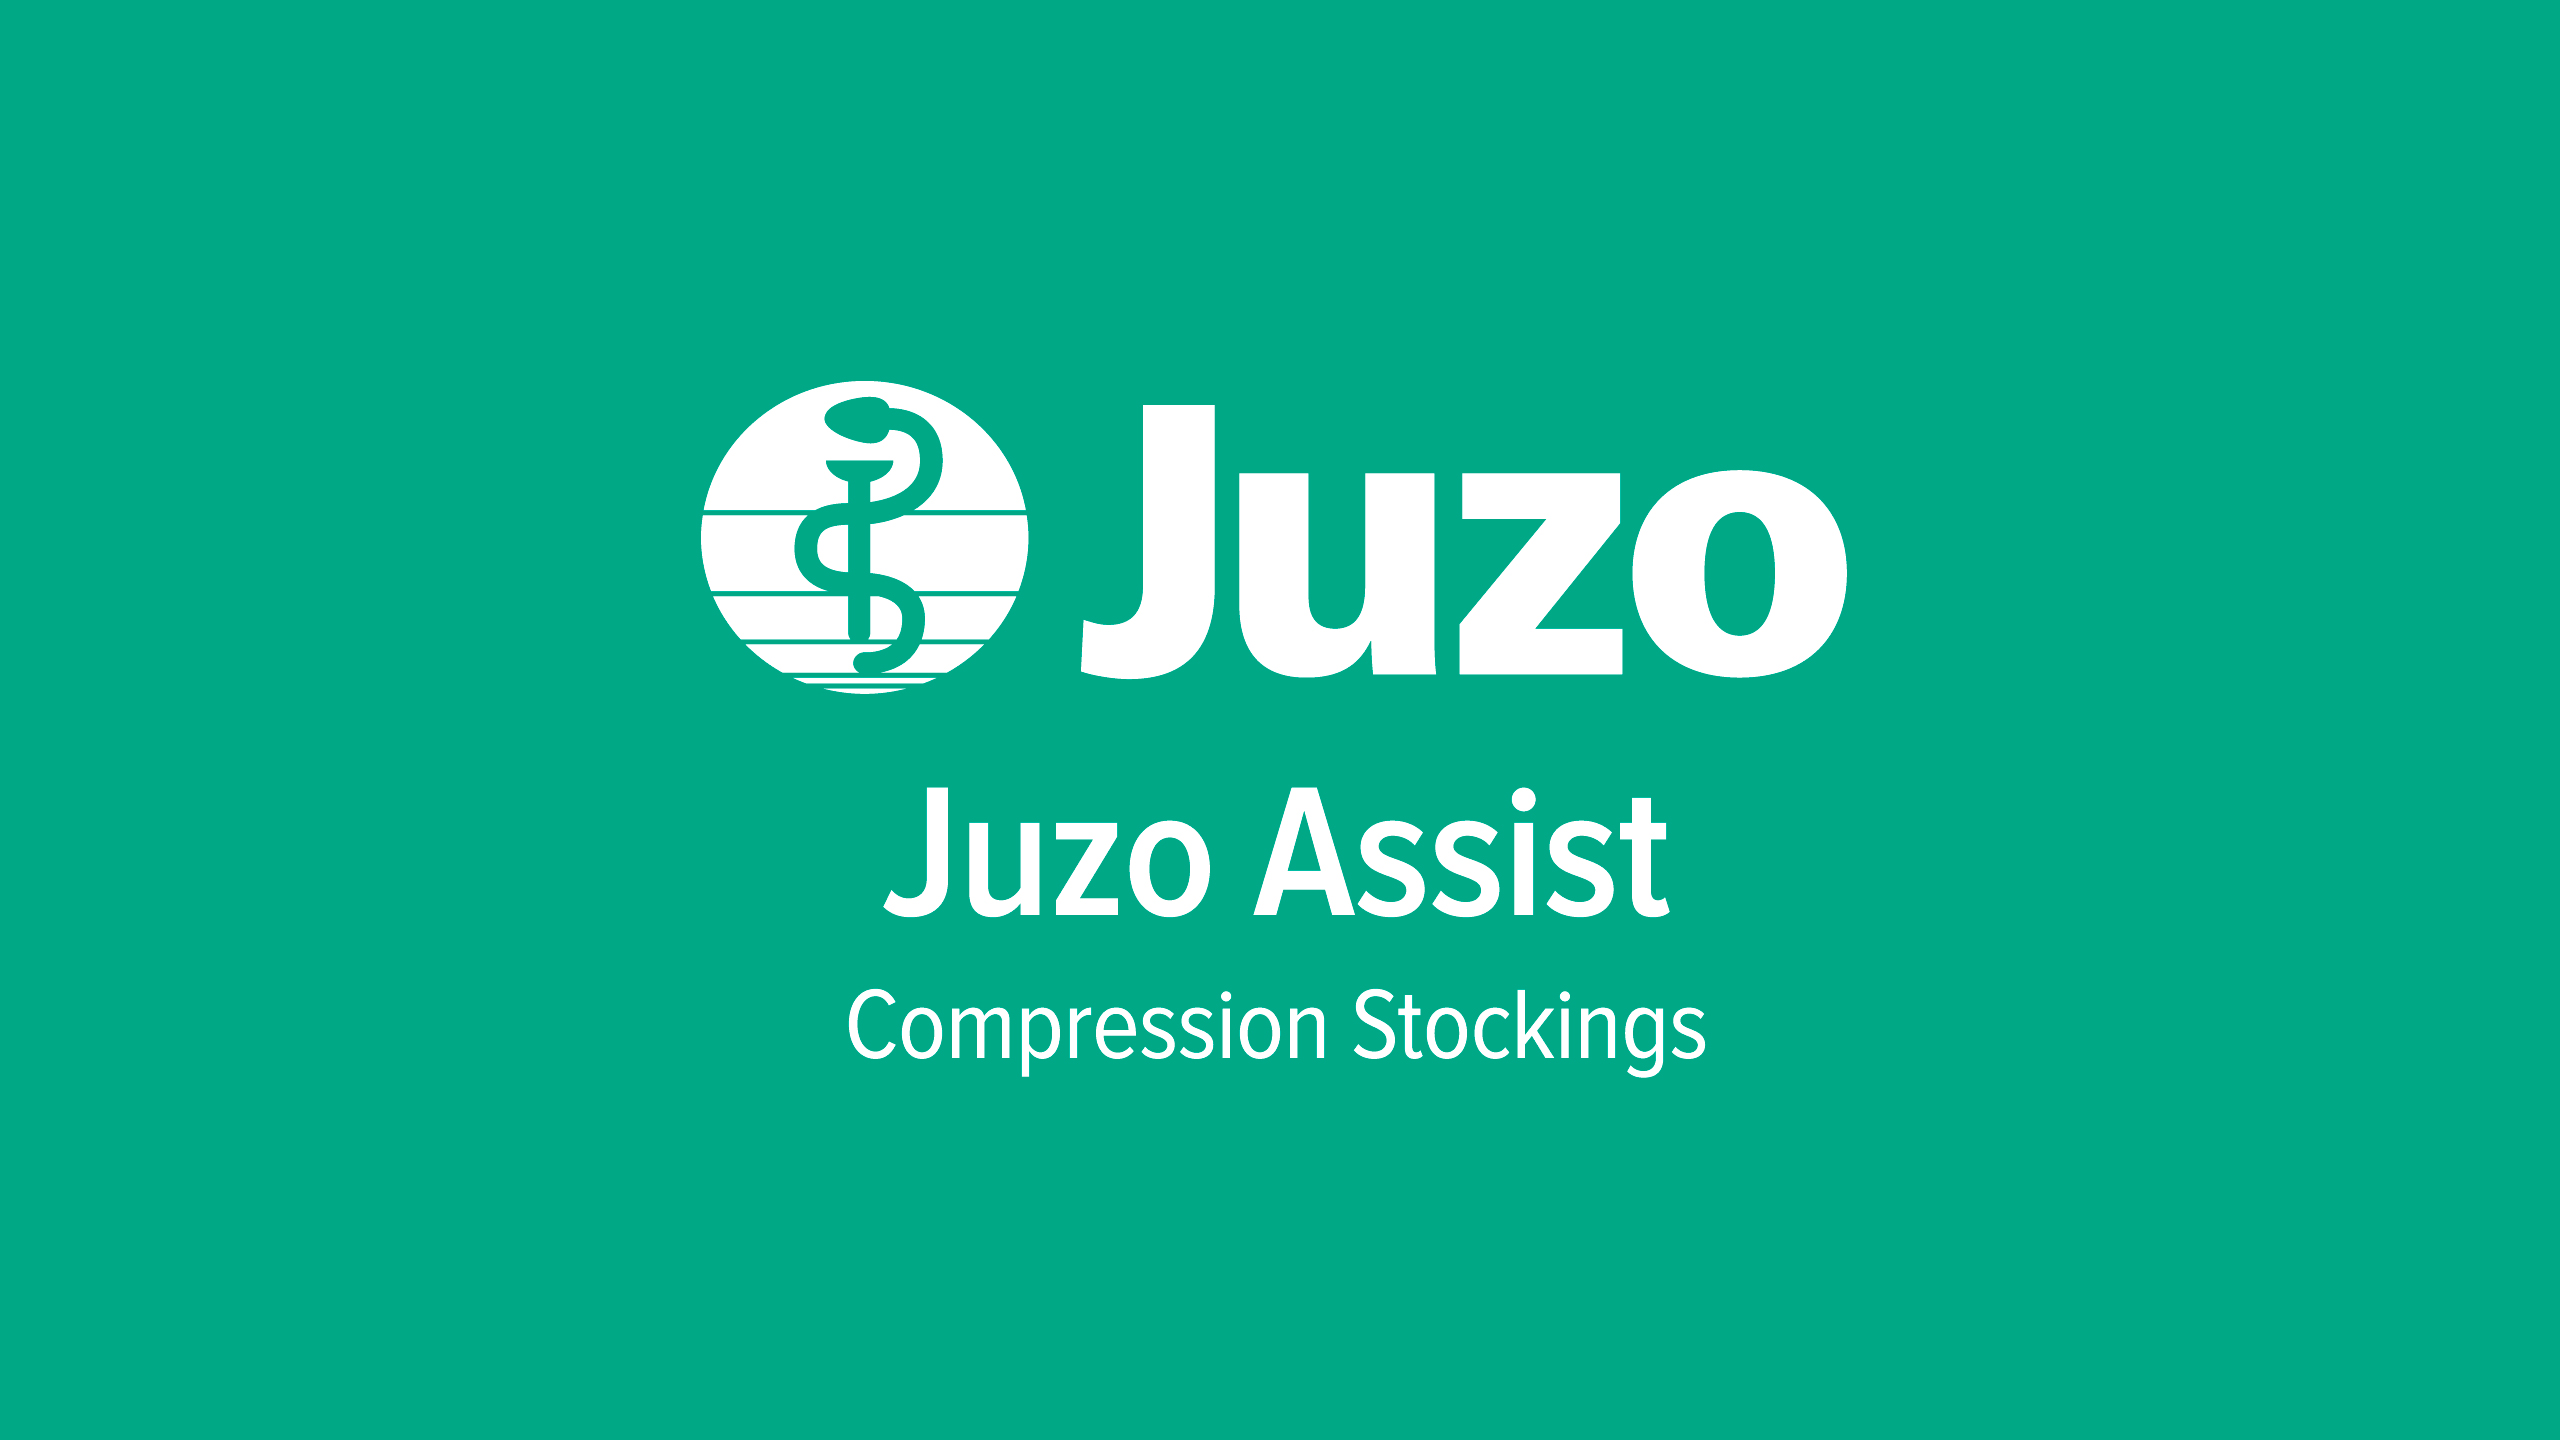 Juzo Assist Unisex Compression Stockings